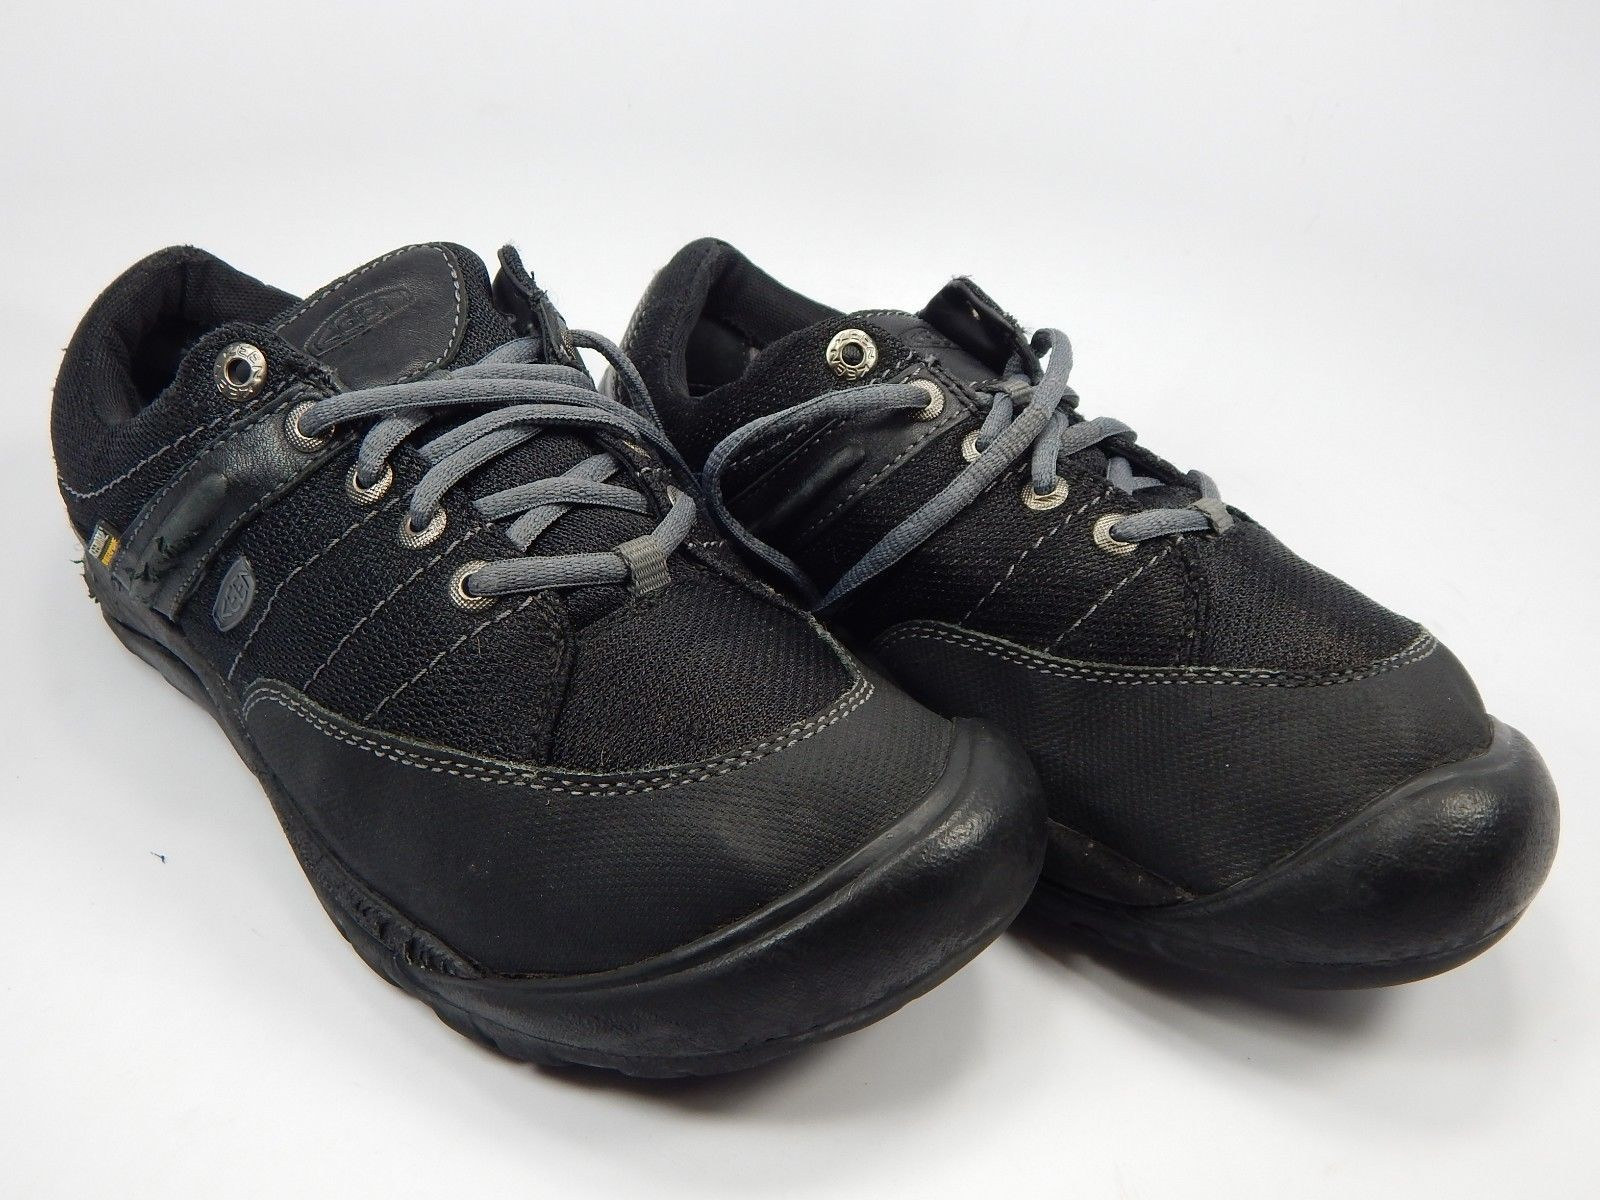 Keen Presidio Size US 8.5 M (B) EU 39 Women's Waterproof Sport Oxford Shoes